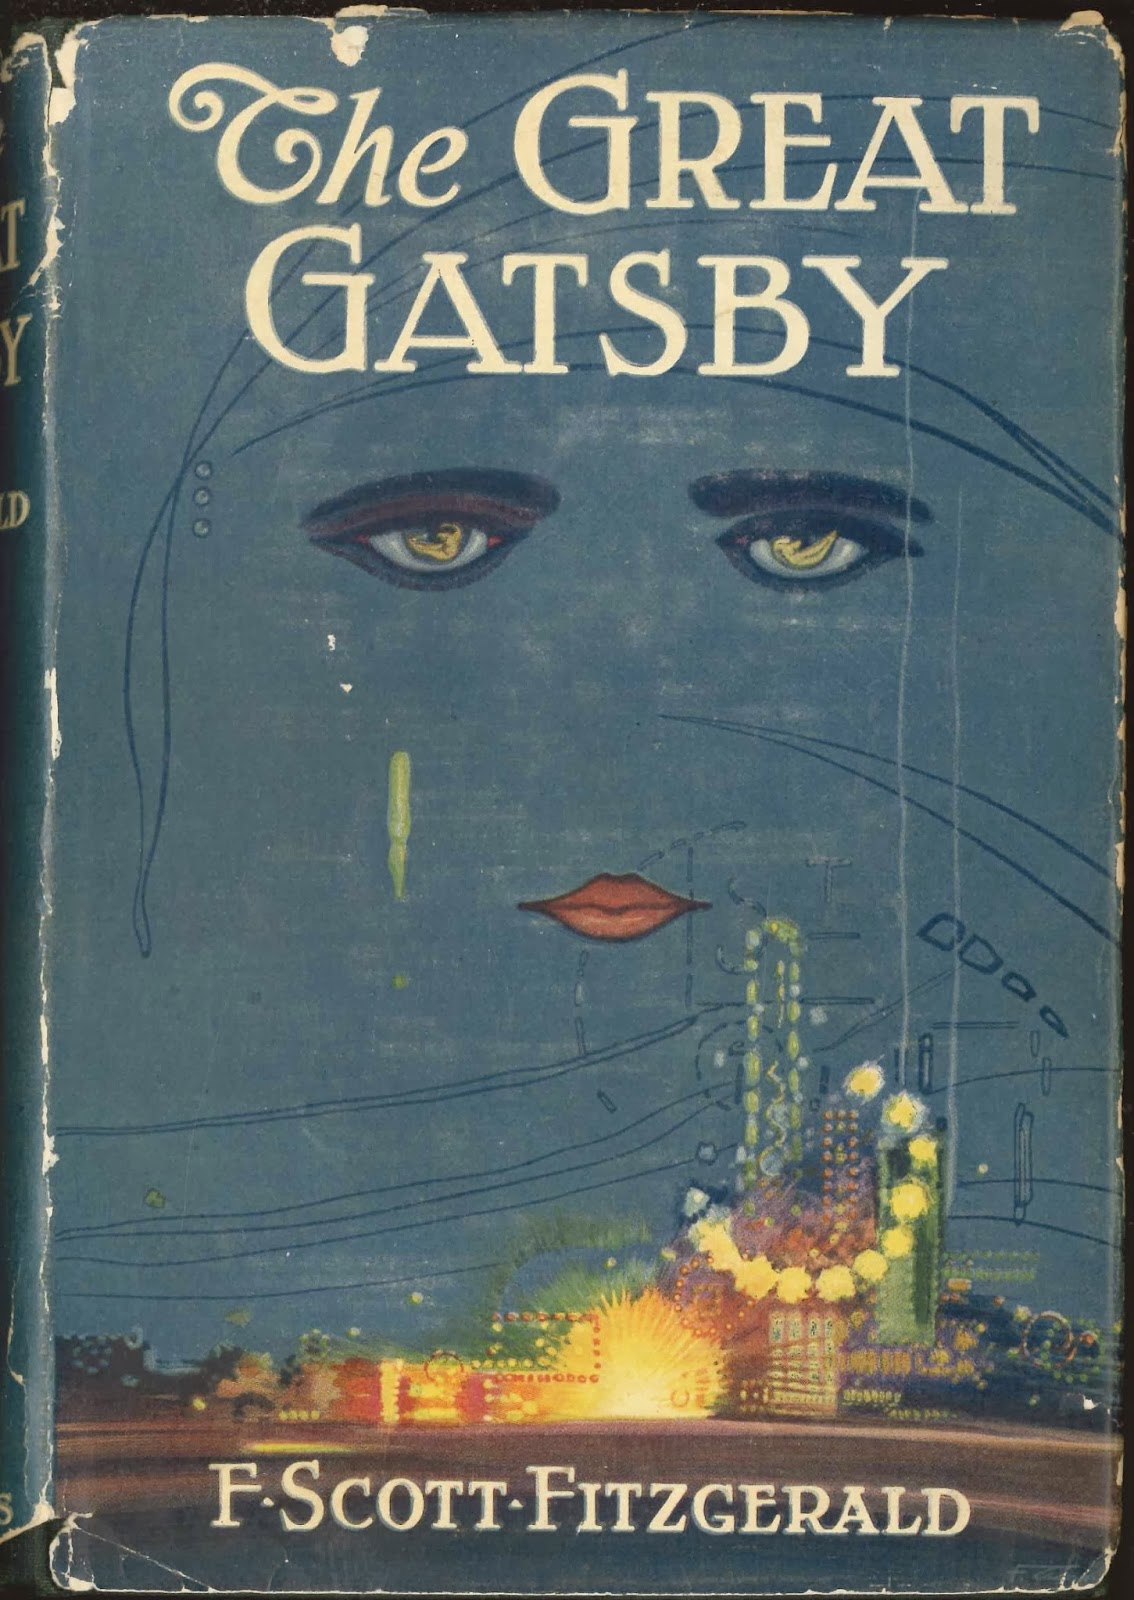 The dust jacket for The Great Gatsby.